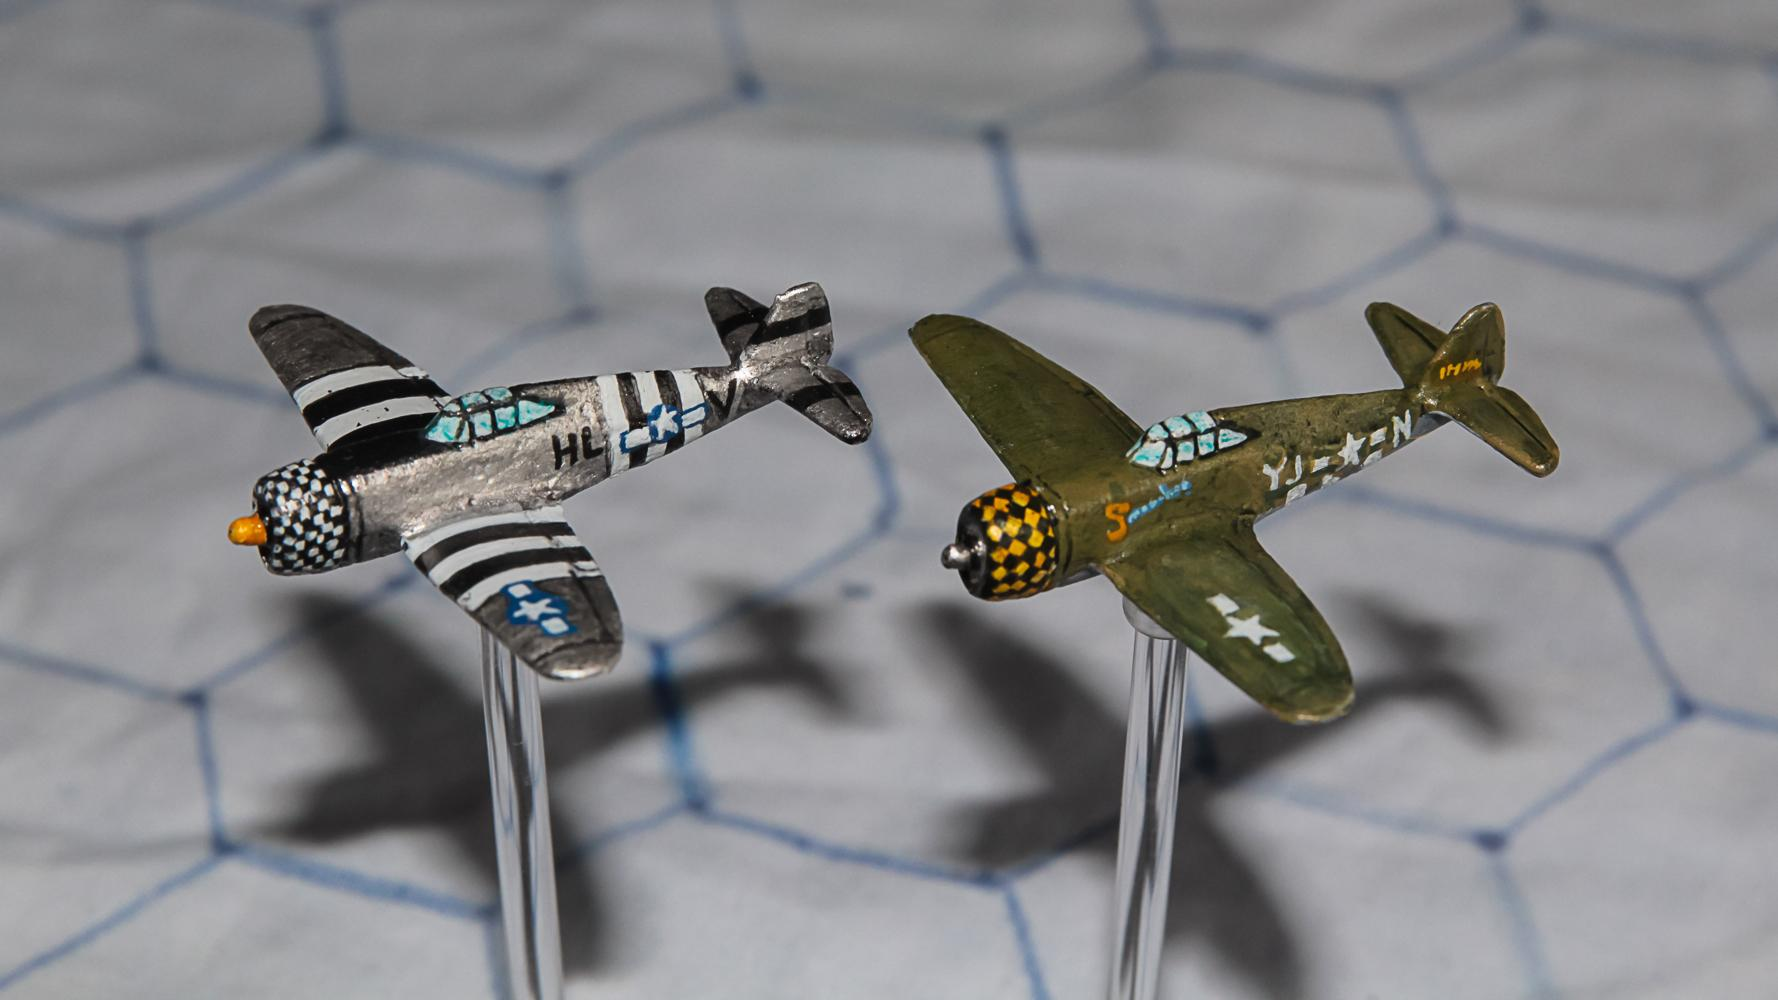 1:300 Scale, 6mm Scale, Air Combat, Airborne, Airplane, Finland, Fliers, French, Germans, Imperial Japan, Italian, Luftwaffe, P-47, Raf, Republic Of China, Soviet, Thunderbolt, Usaaf, World War 2